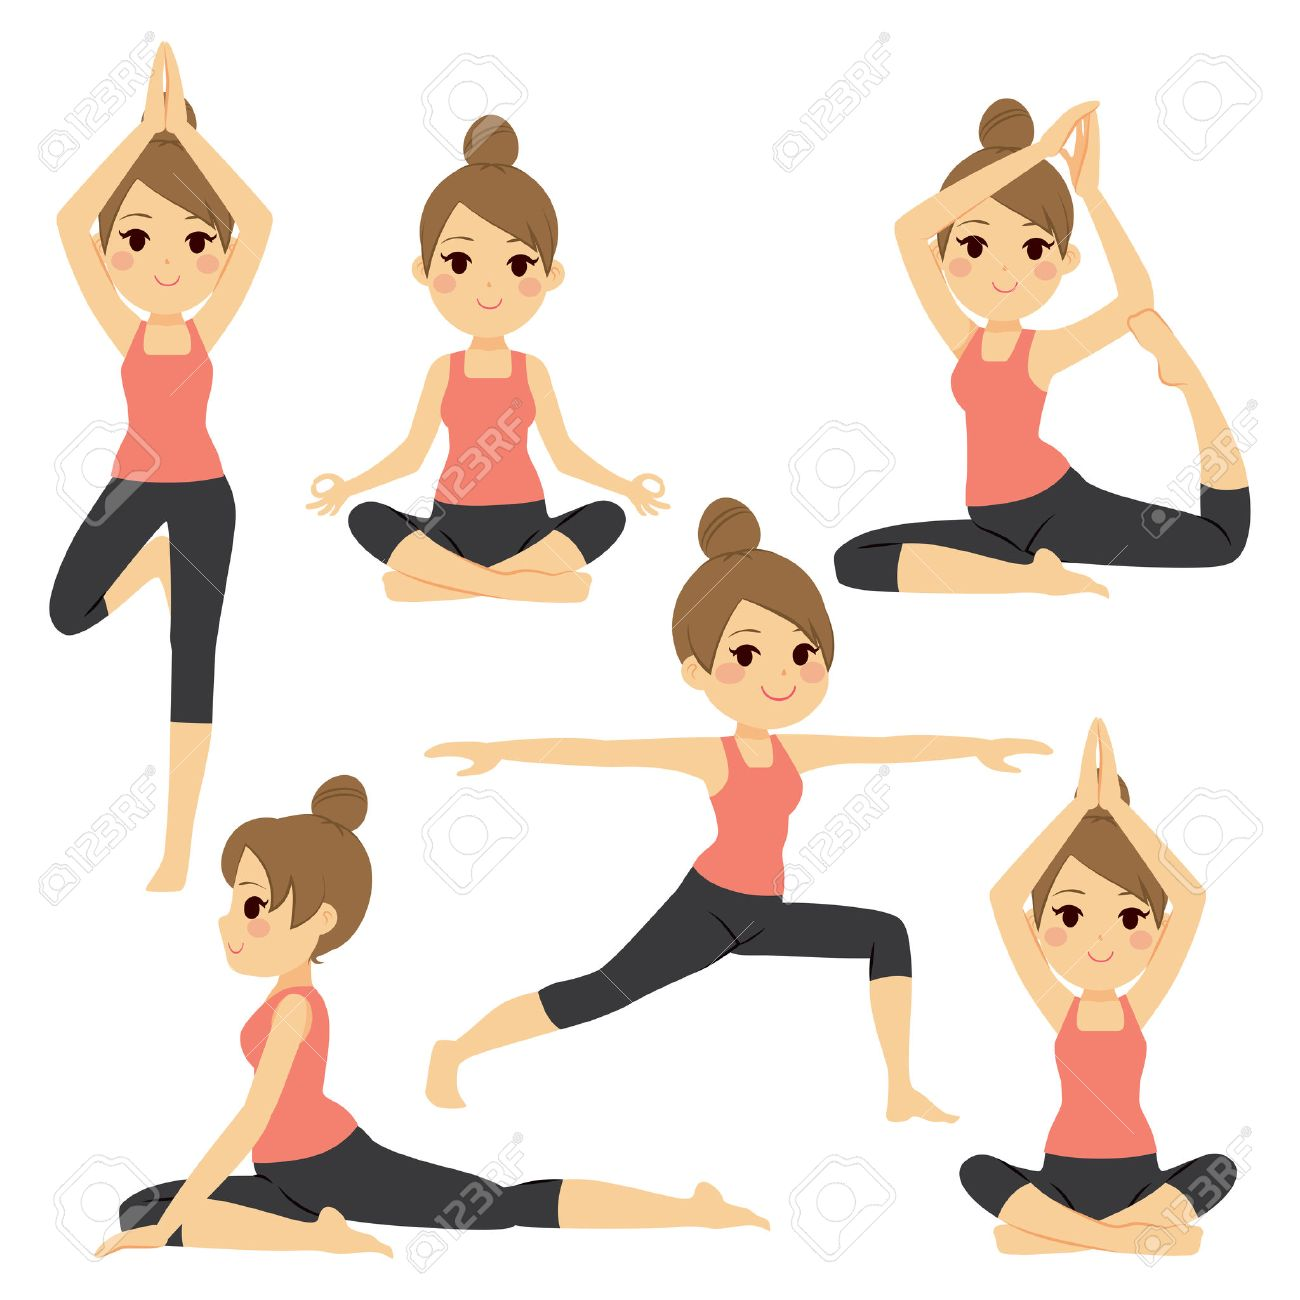 Image result for cartoon images of various exercise